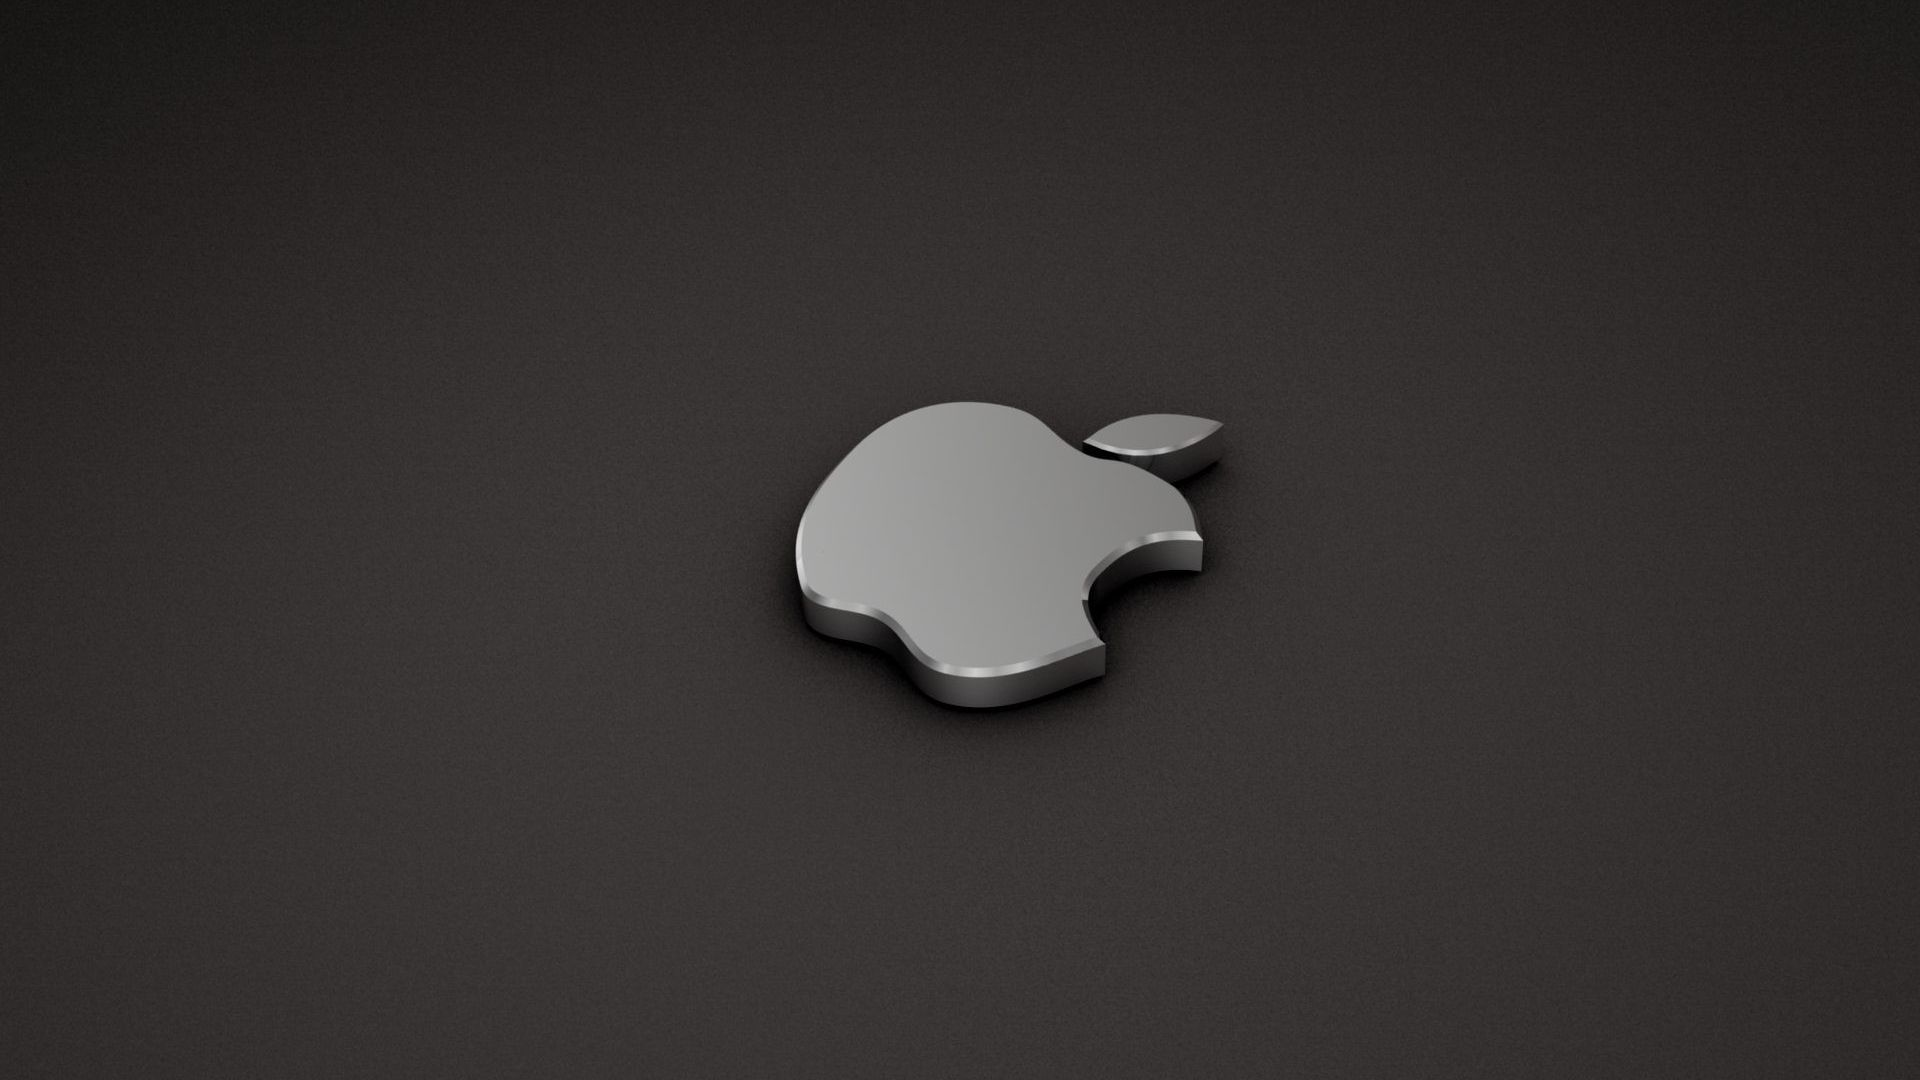 Apple Logo Wallpapers Wallpapers All Superior Apple Logo Wallpapers Backgrounds Wallpapersplanet Net